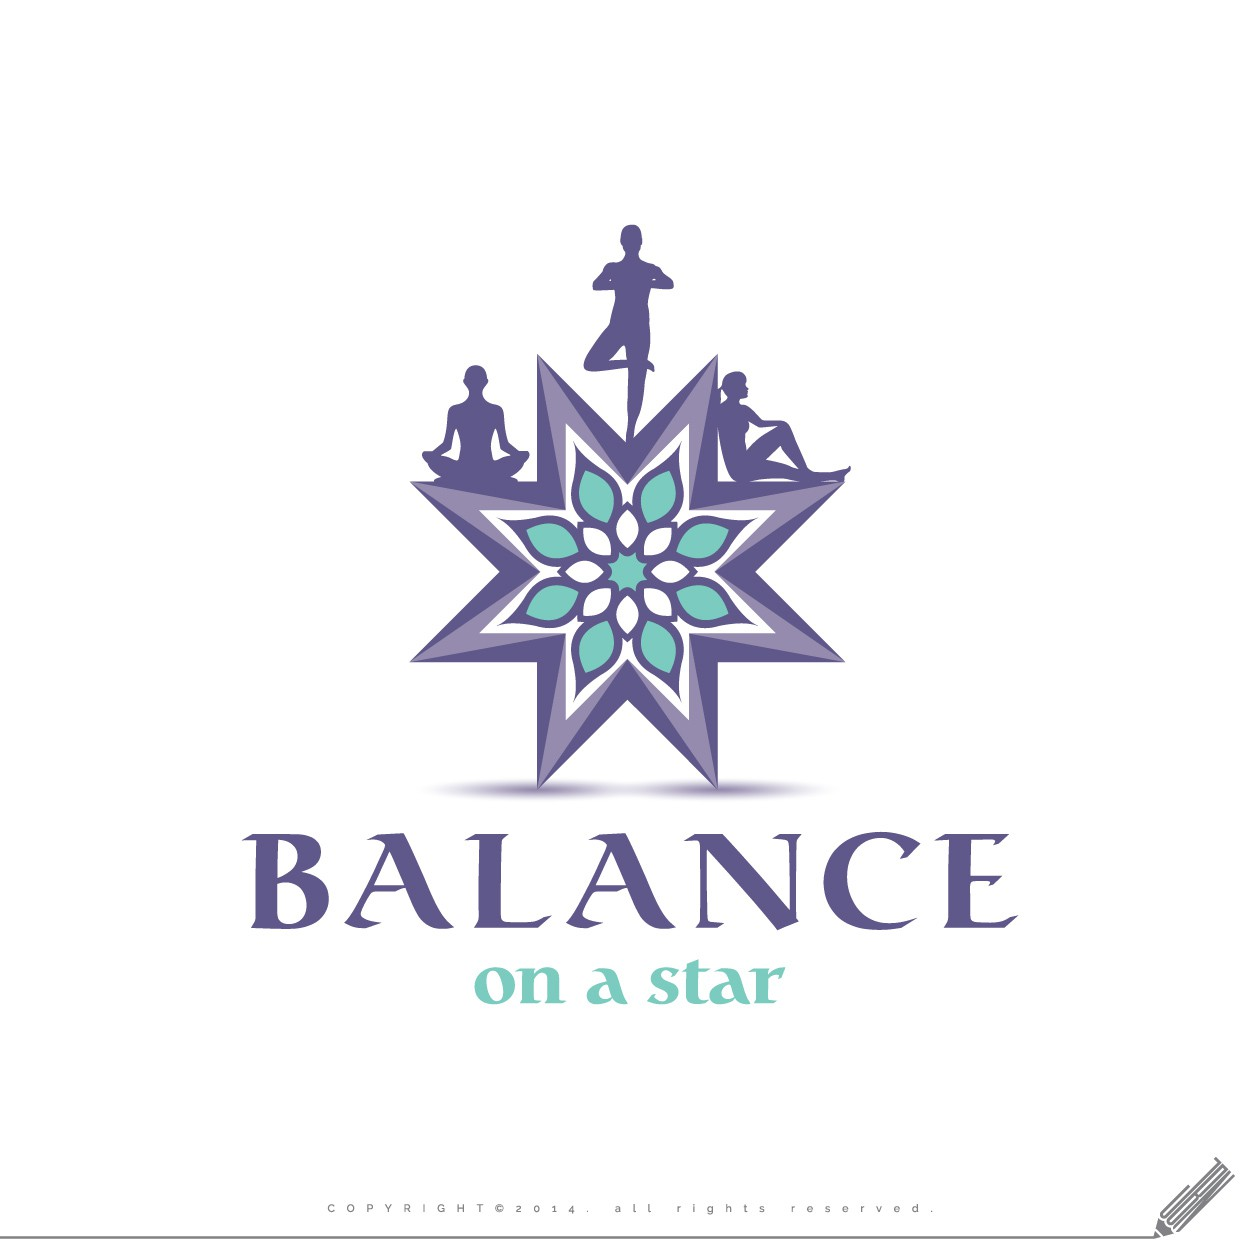 Help! My yogis need to find balance. I have everything but your logo to make it happen.